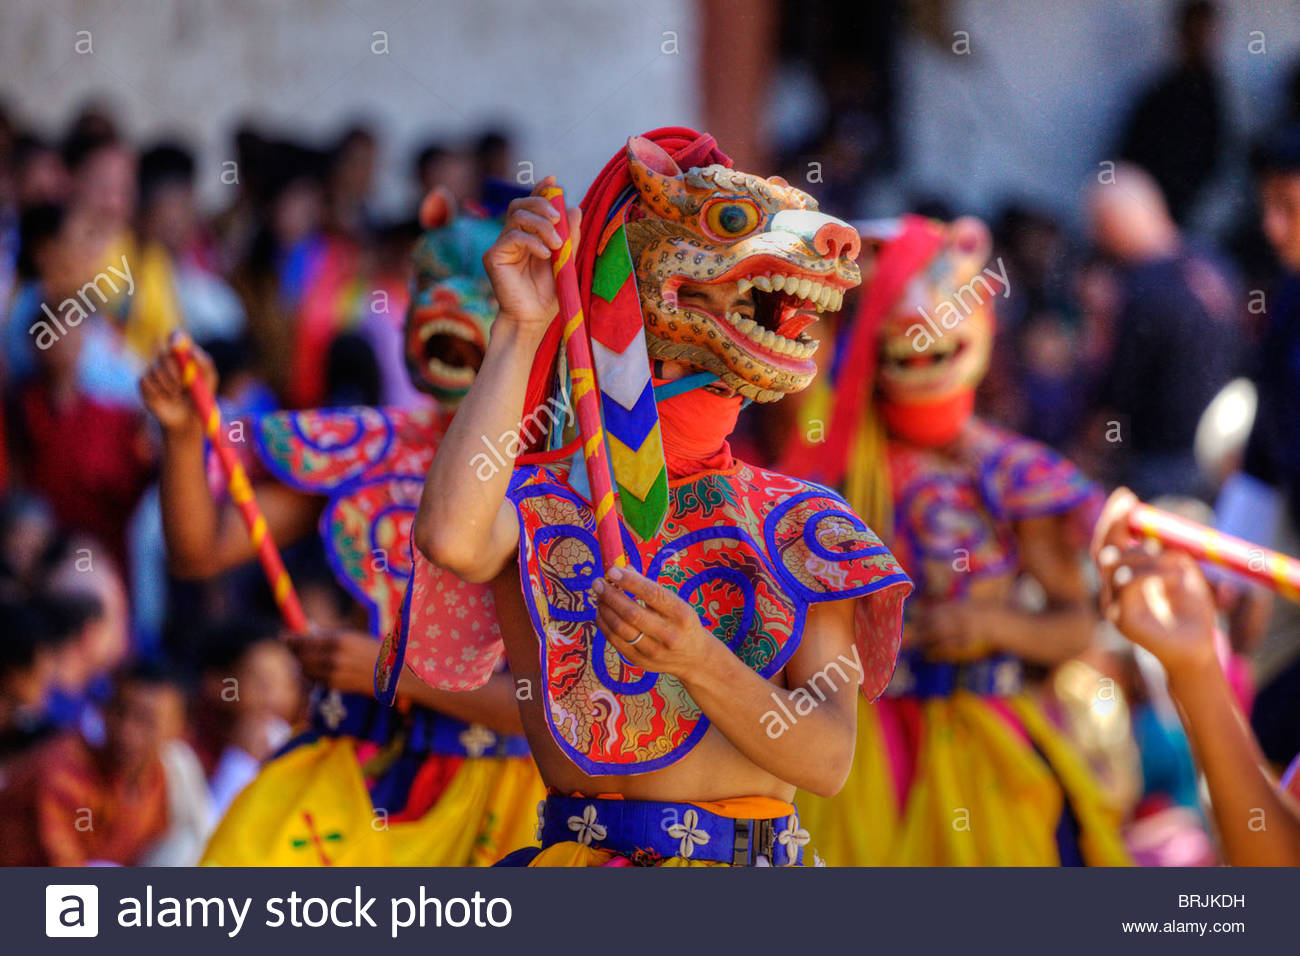 Dancers recreate myths and legends of Himalayan Buddhism in festivals. - Stock Image